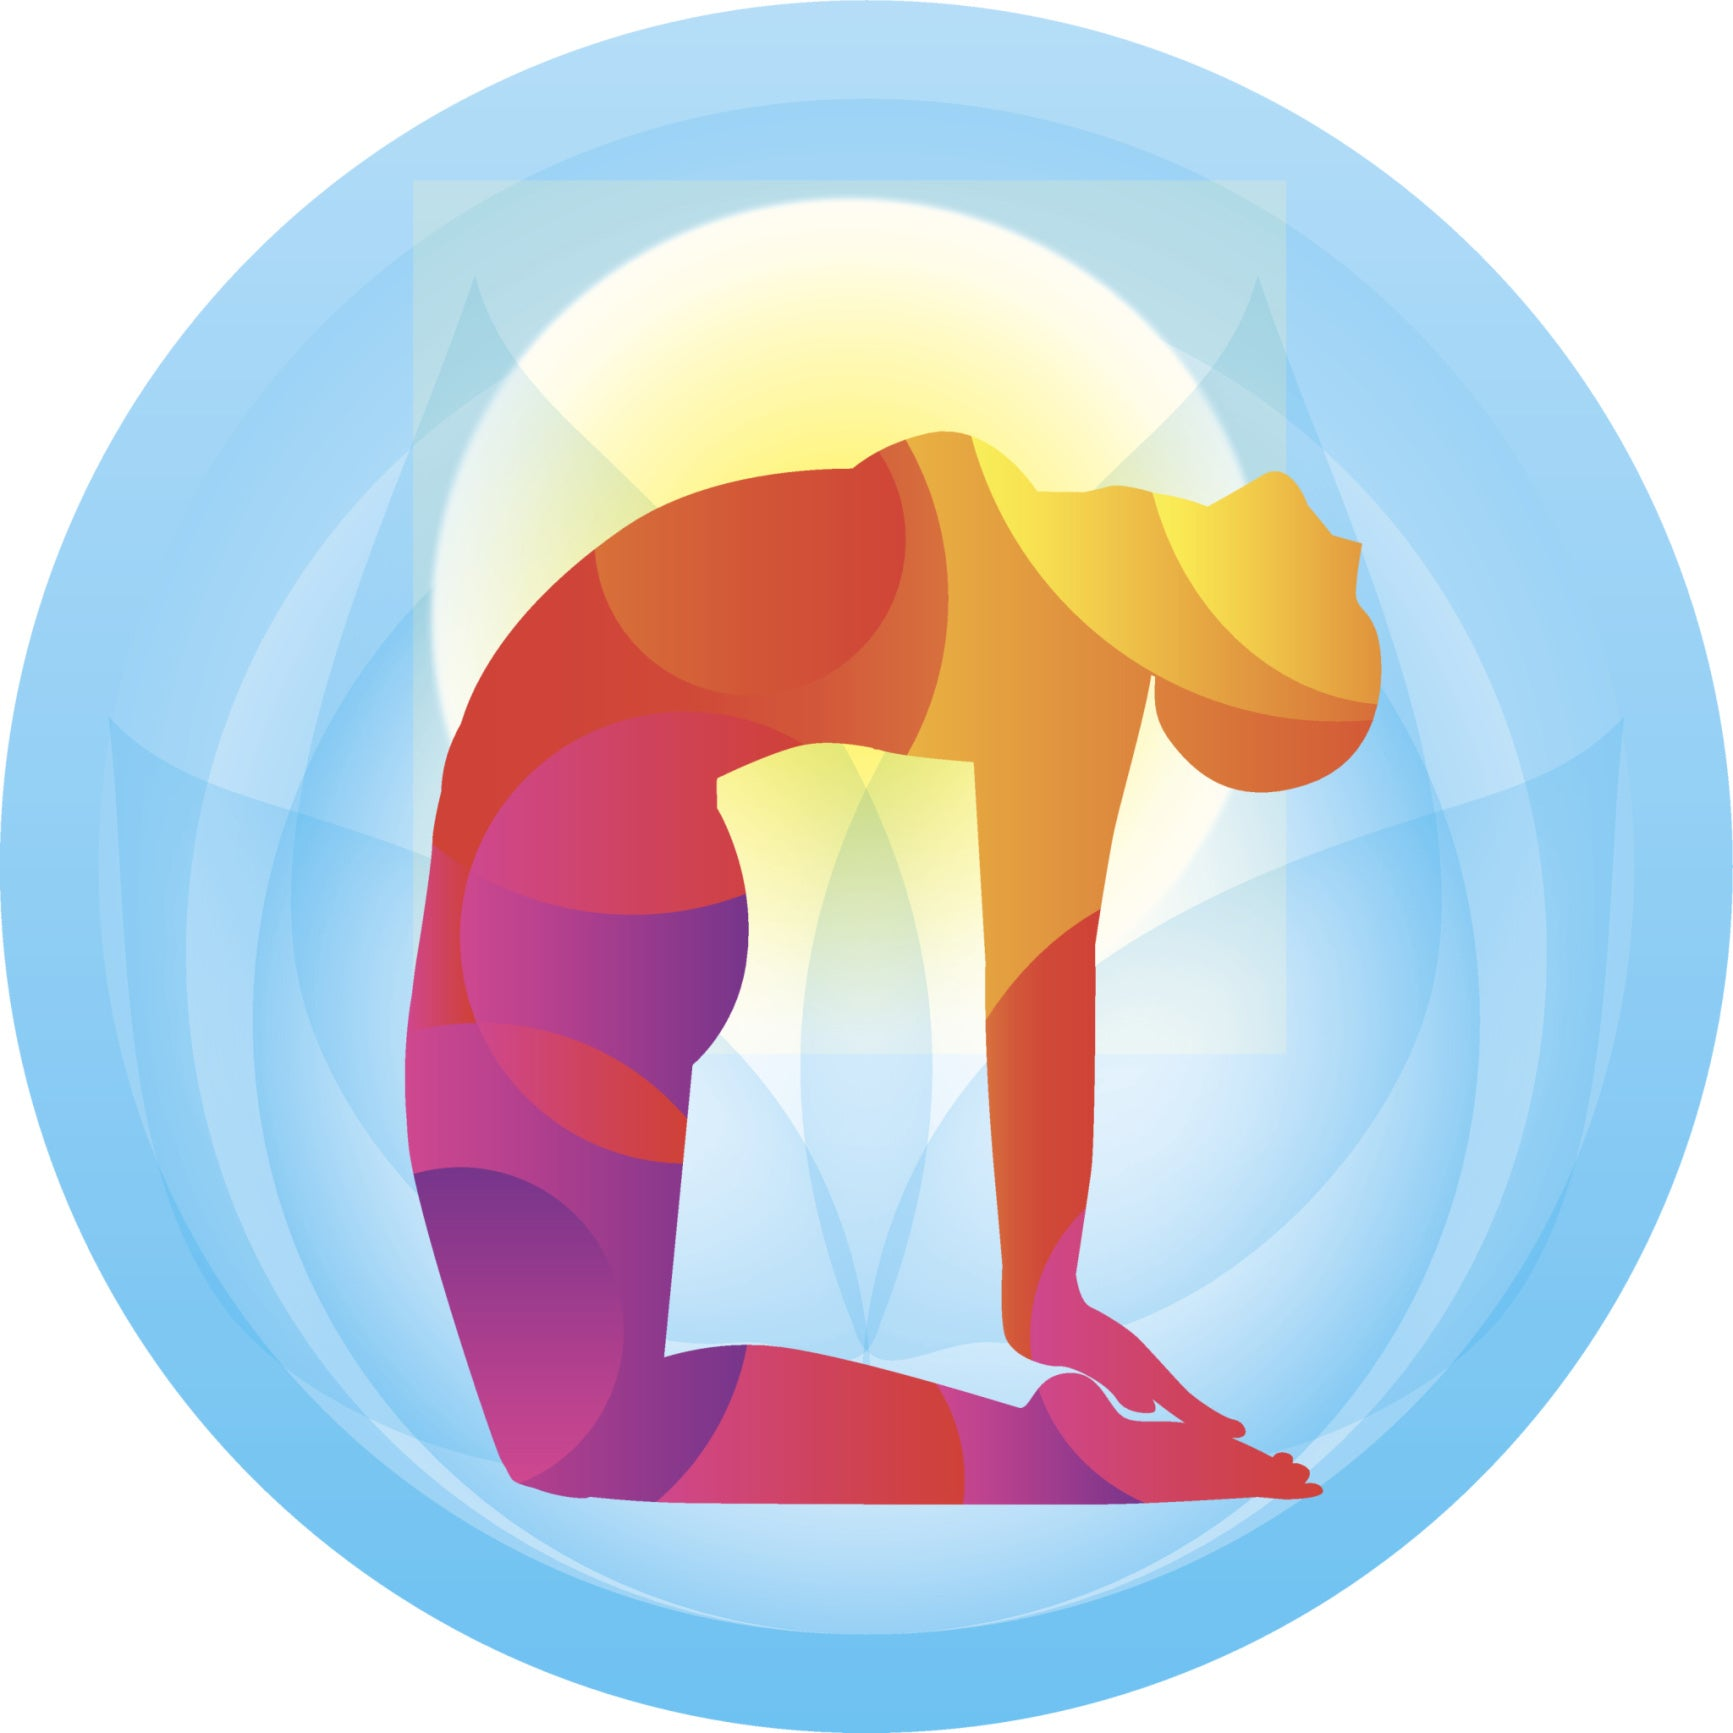 YOGA POSE OF CAMEL ICON HEALTHY STRESS FREE LIGHT BLUE YELLOW ORANGE RED PURPLE PINK WHITE Vinyl Decal Sticker